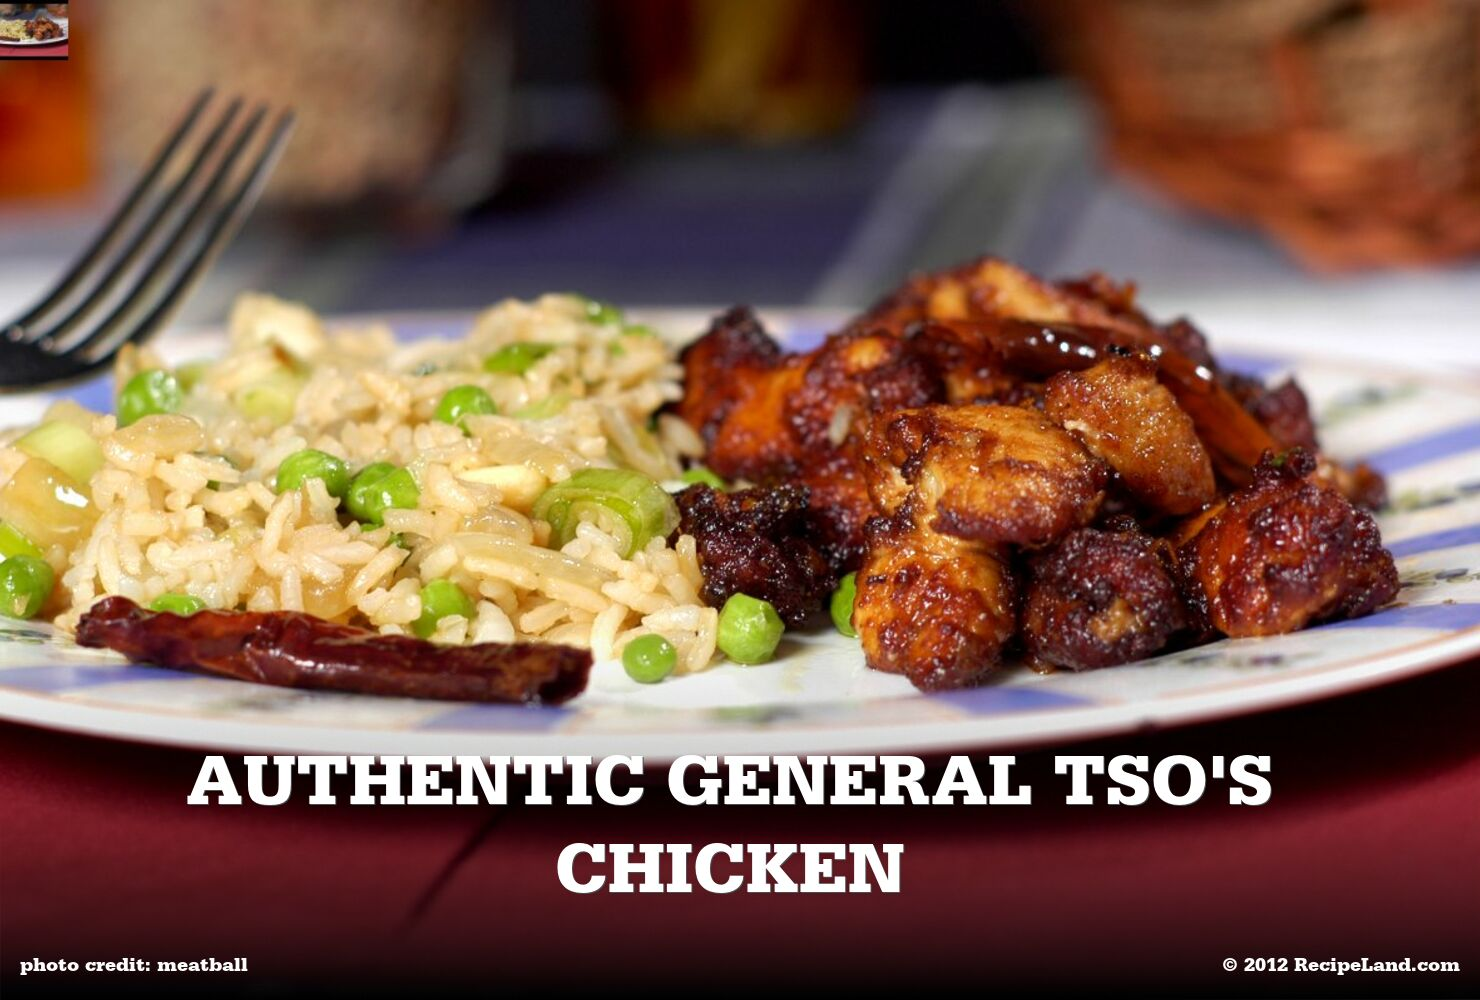 Authentic General Tso's Chicken